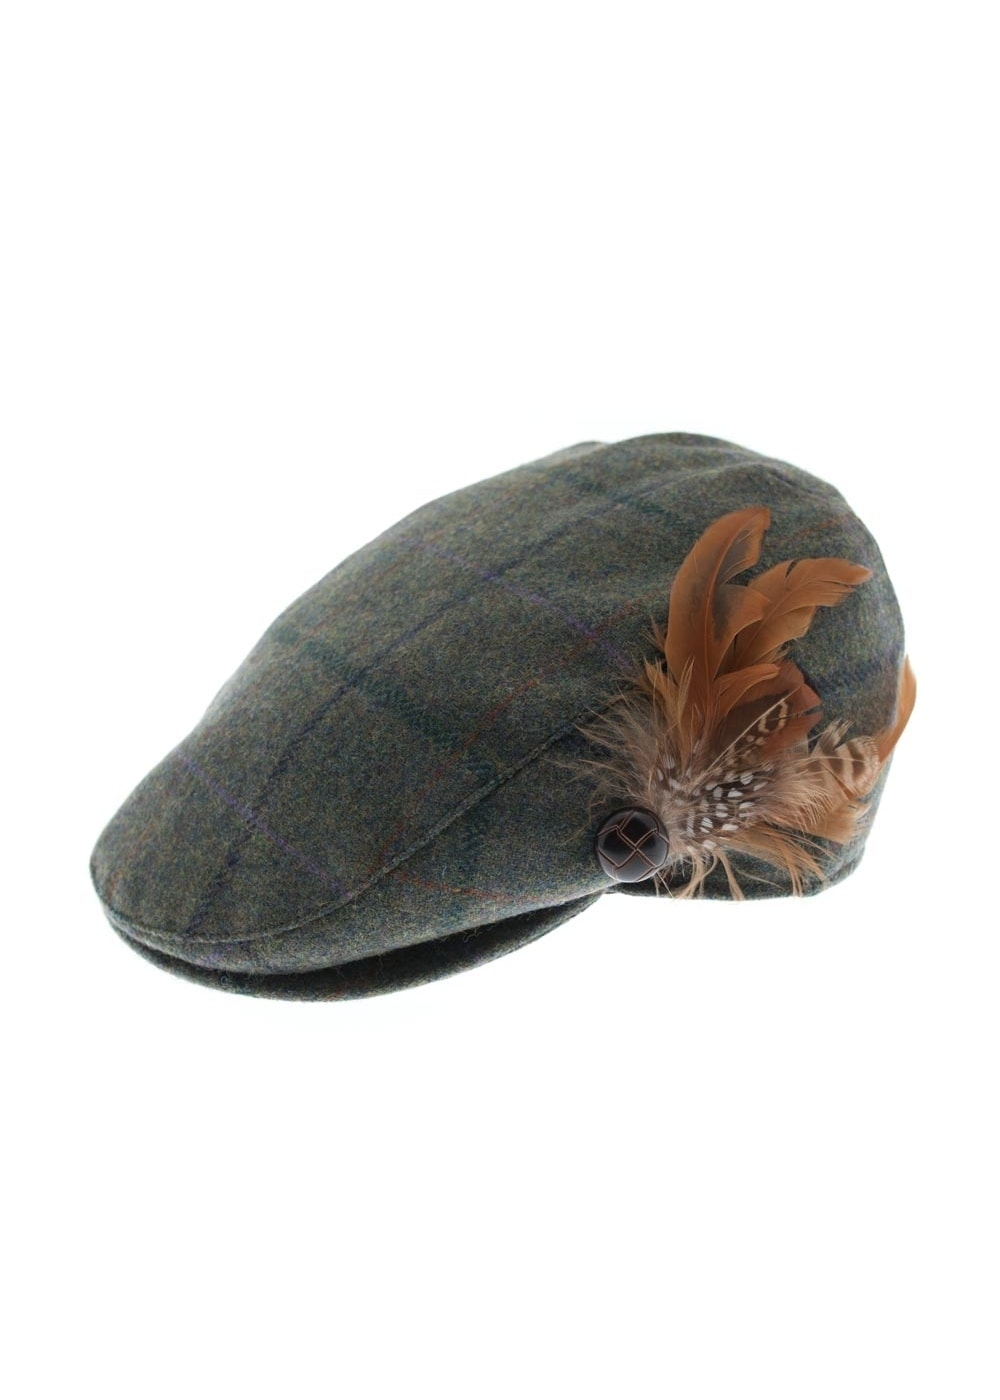 ed4dbeb0d44 Barbour Tweed Flat Cap - Ladies from A Hume UK